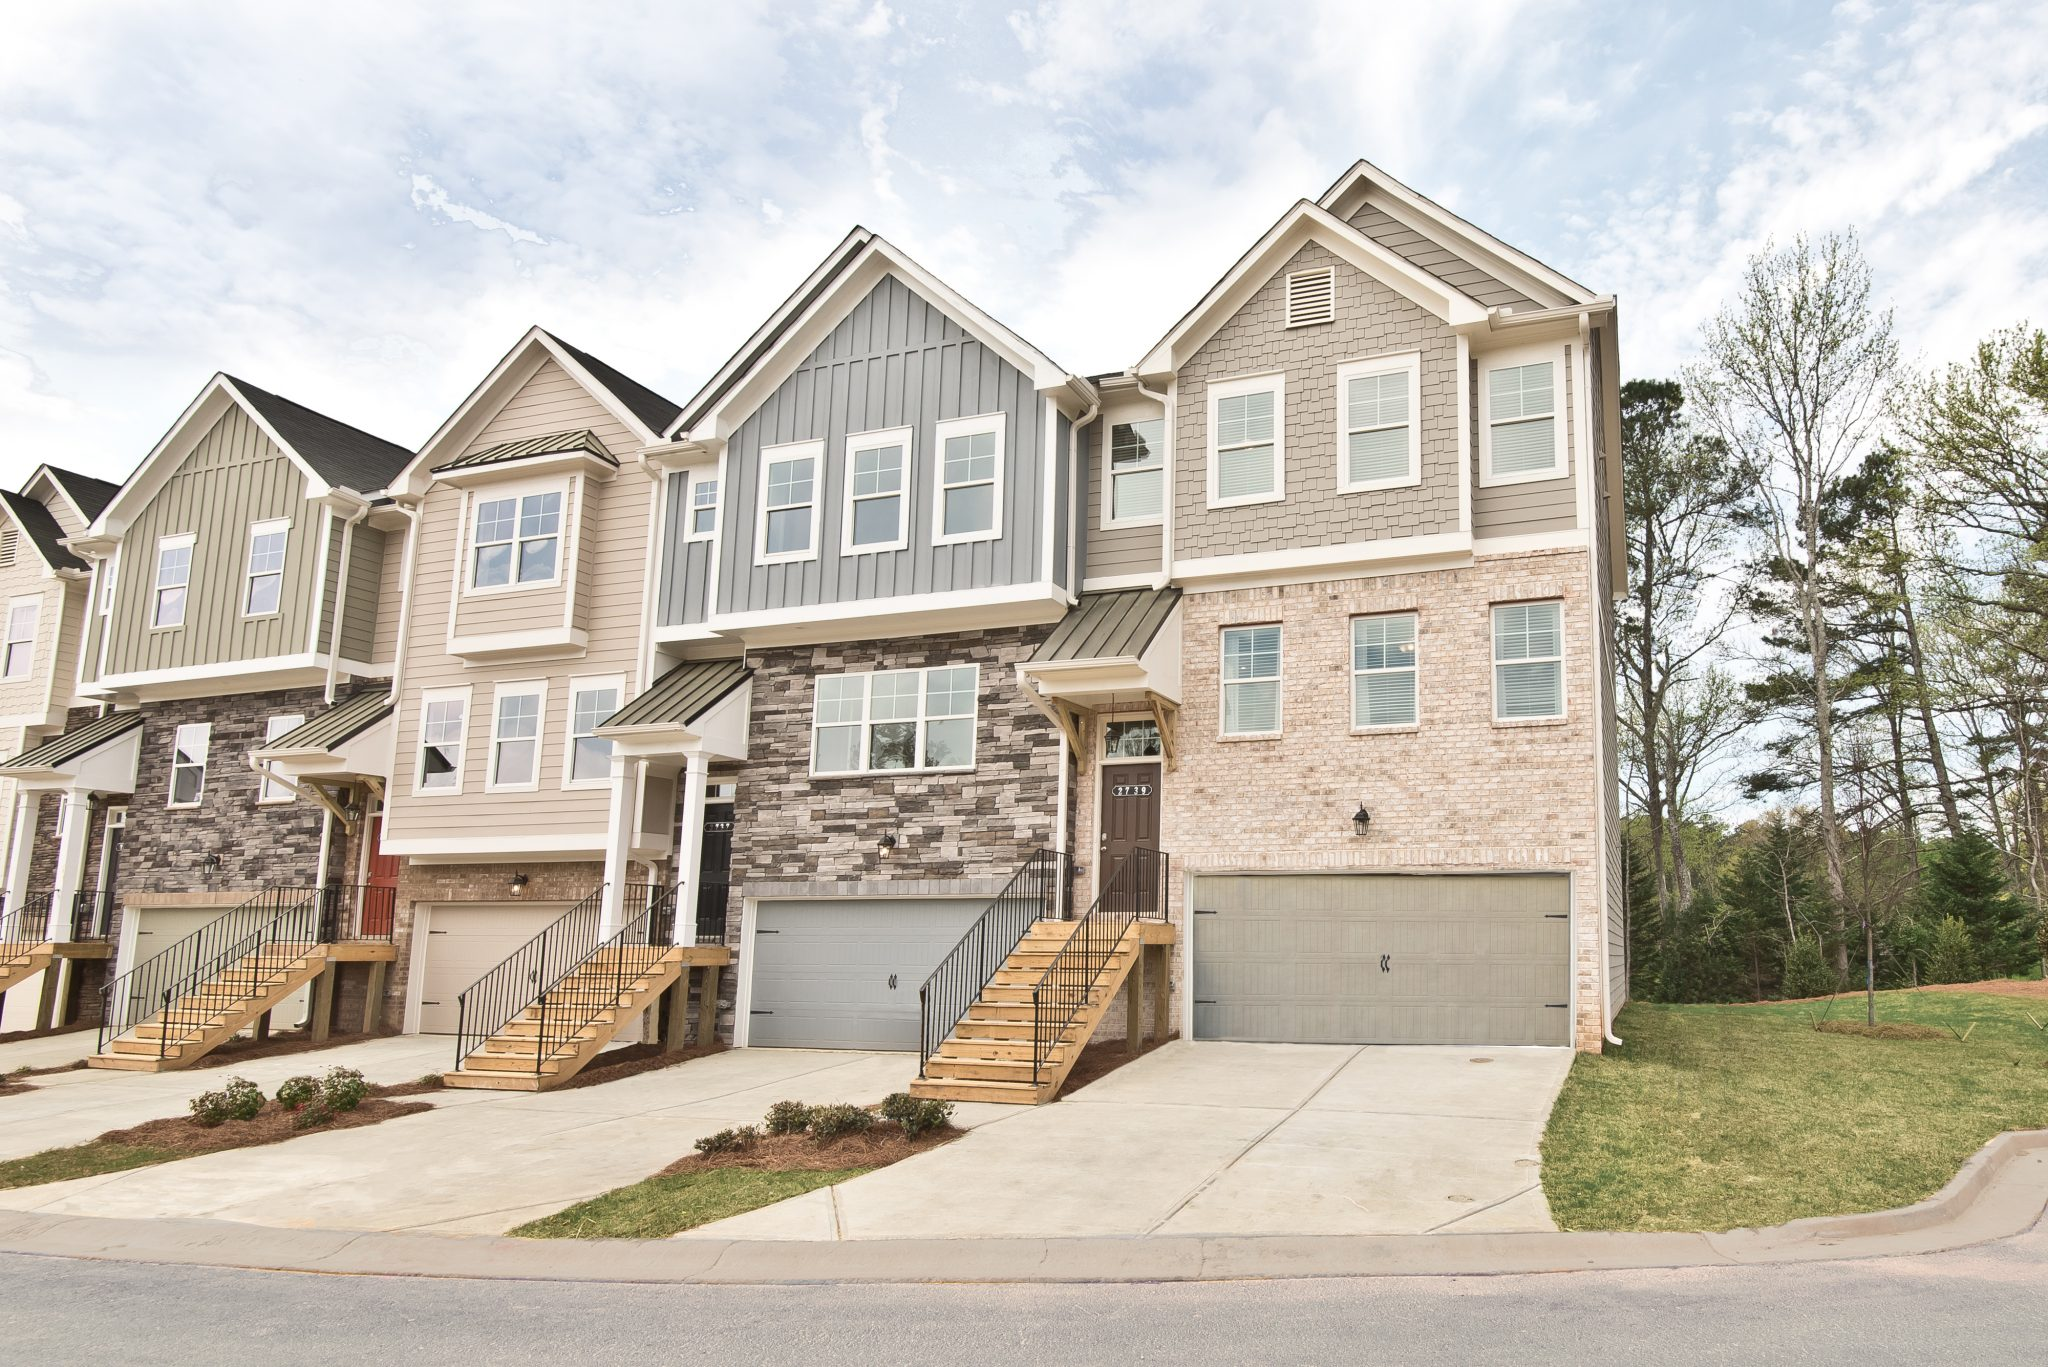 Townhomes in Kennesaw at Cantrell Crossing